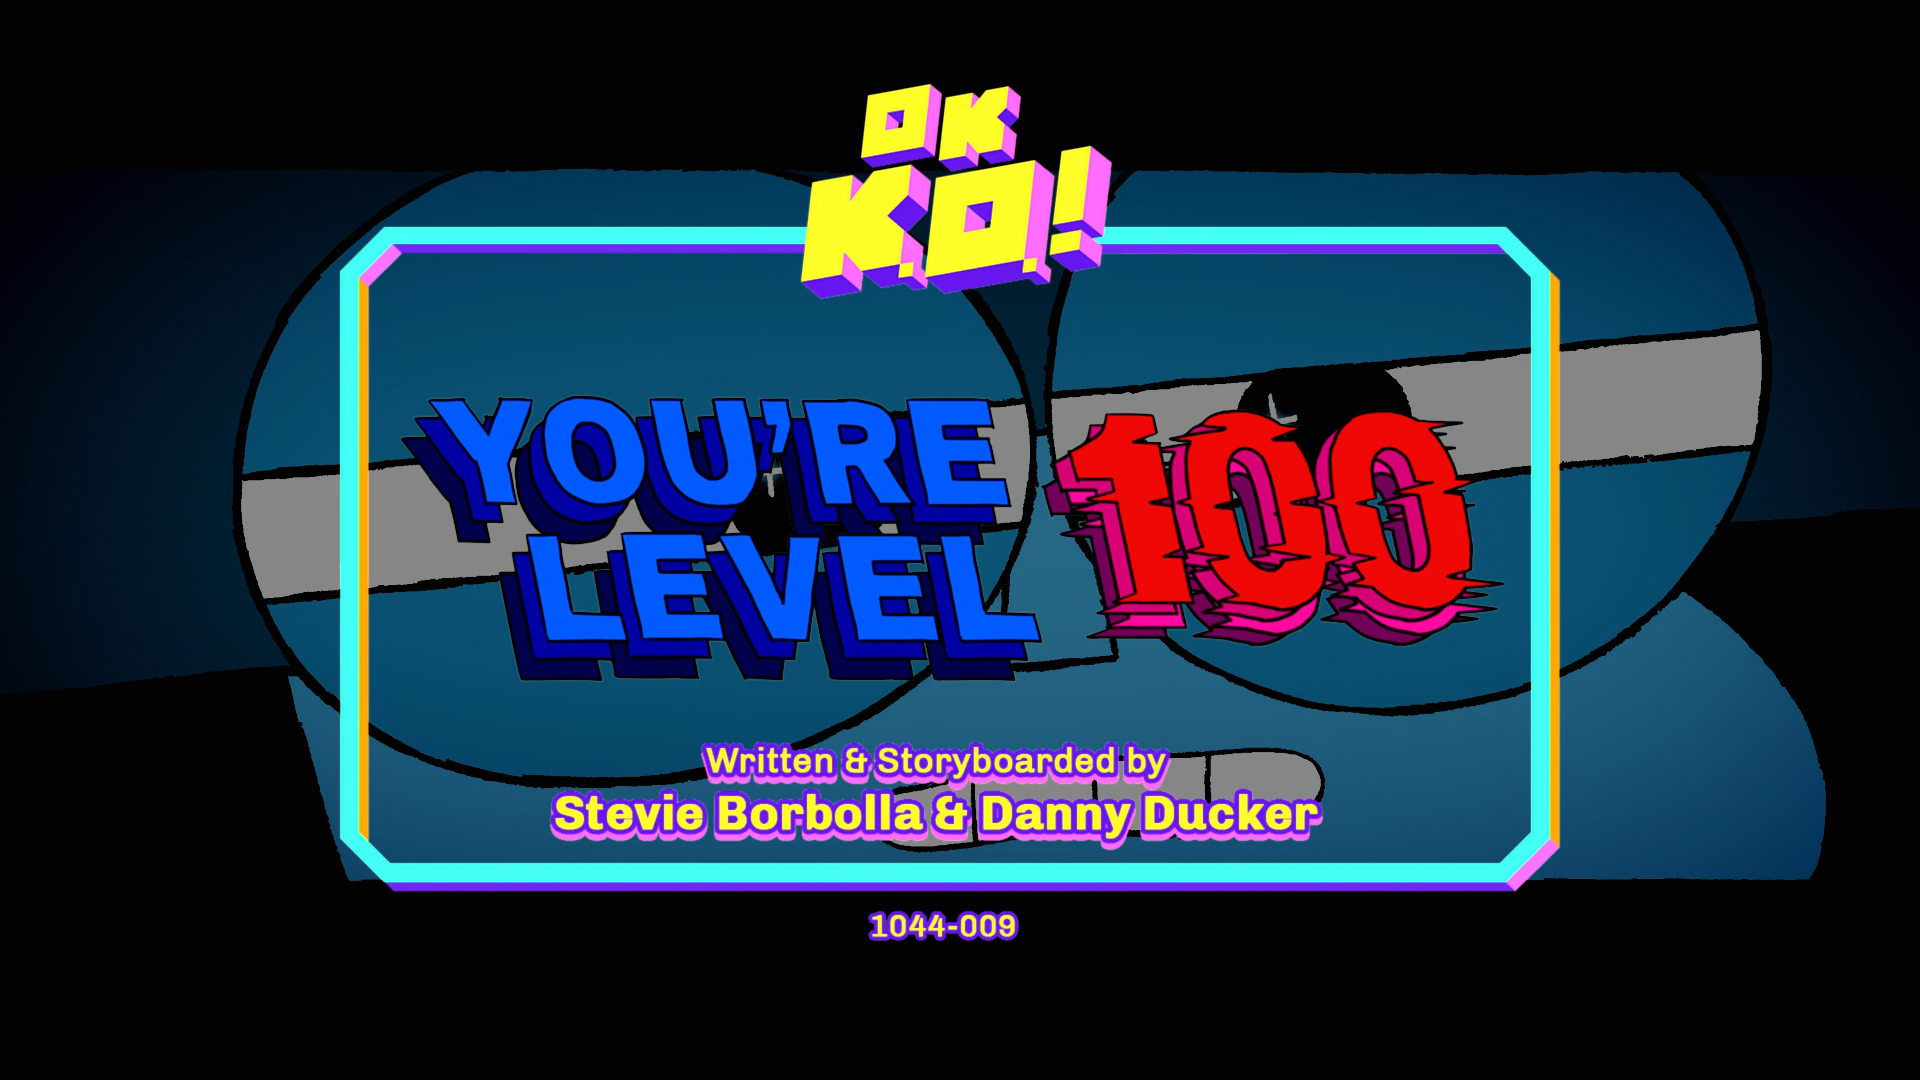 You're Level 100!